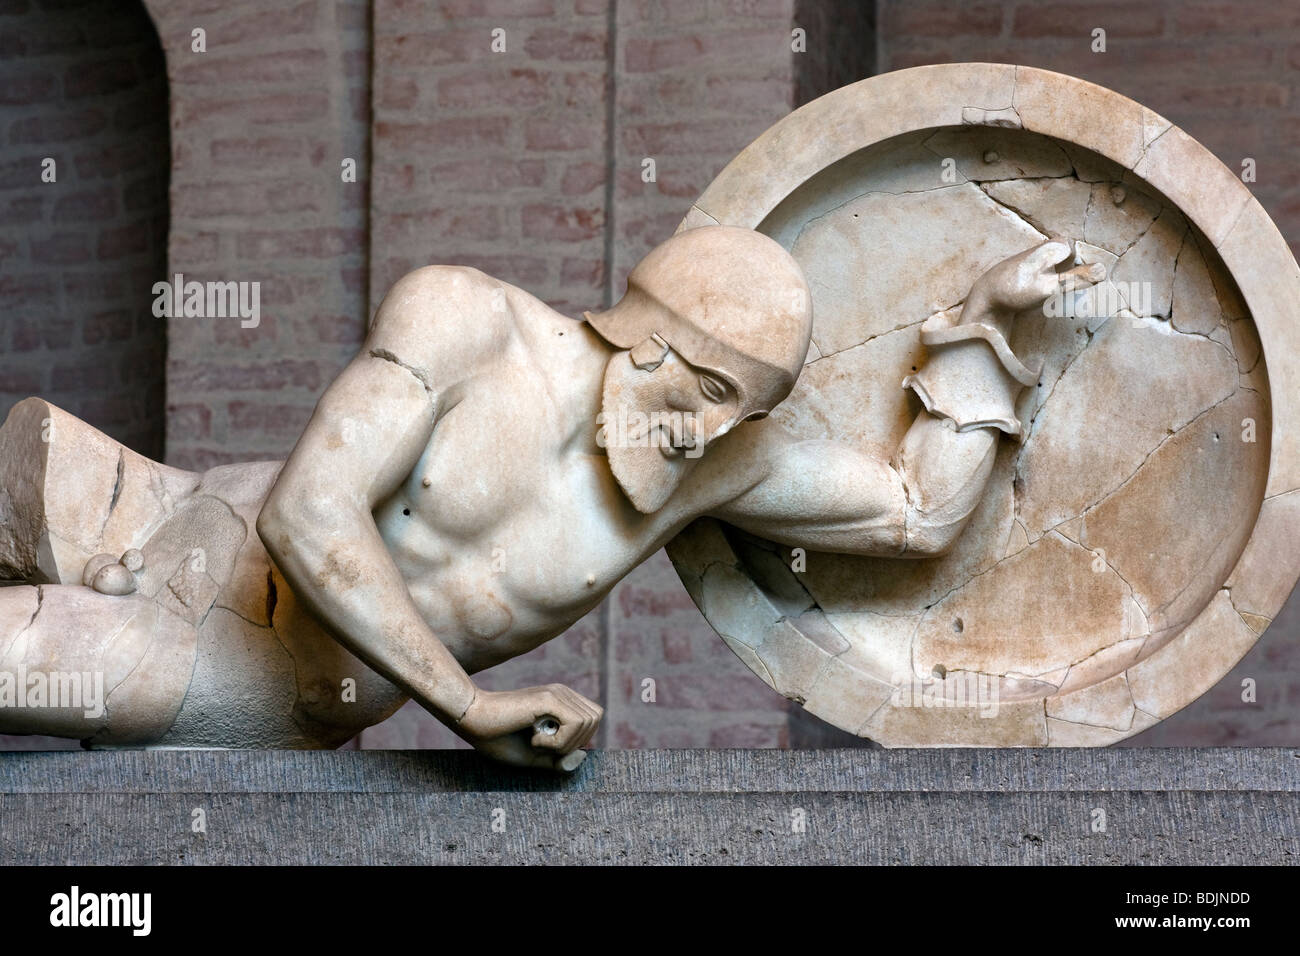 Dying warrior from the east pediment of the Temple of Aphaia at Aegina, now displayed in the Munich Glyptothek. - Stock Image